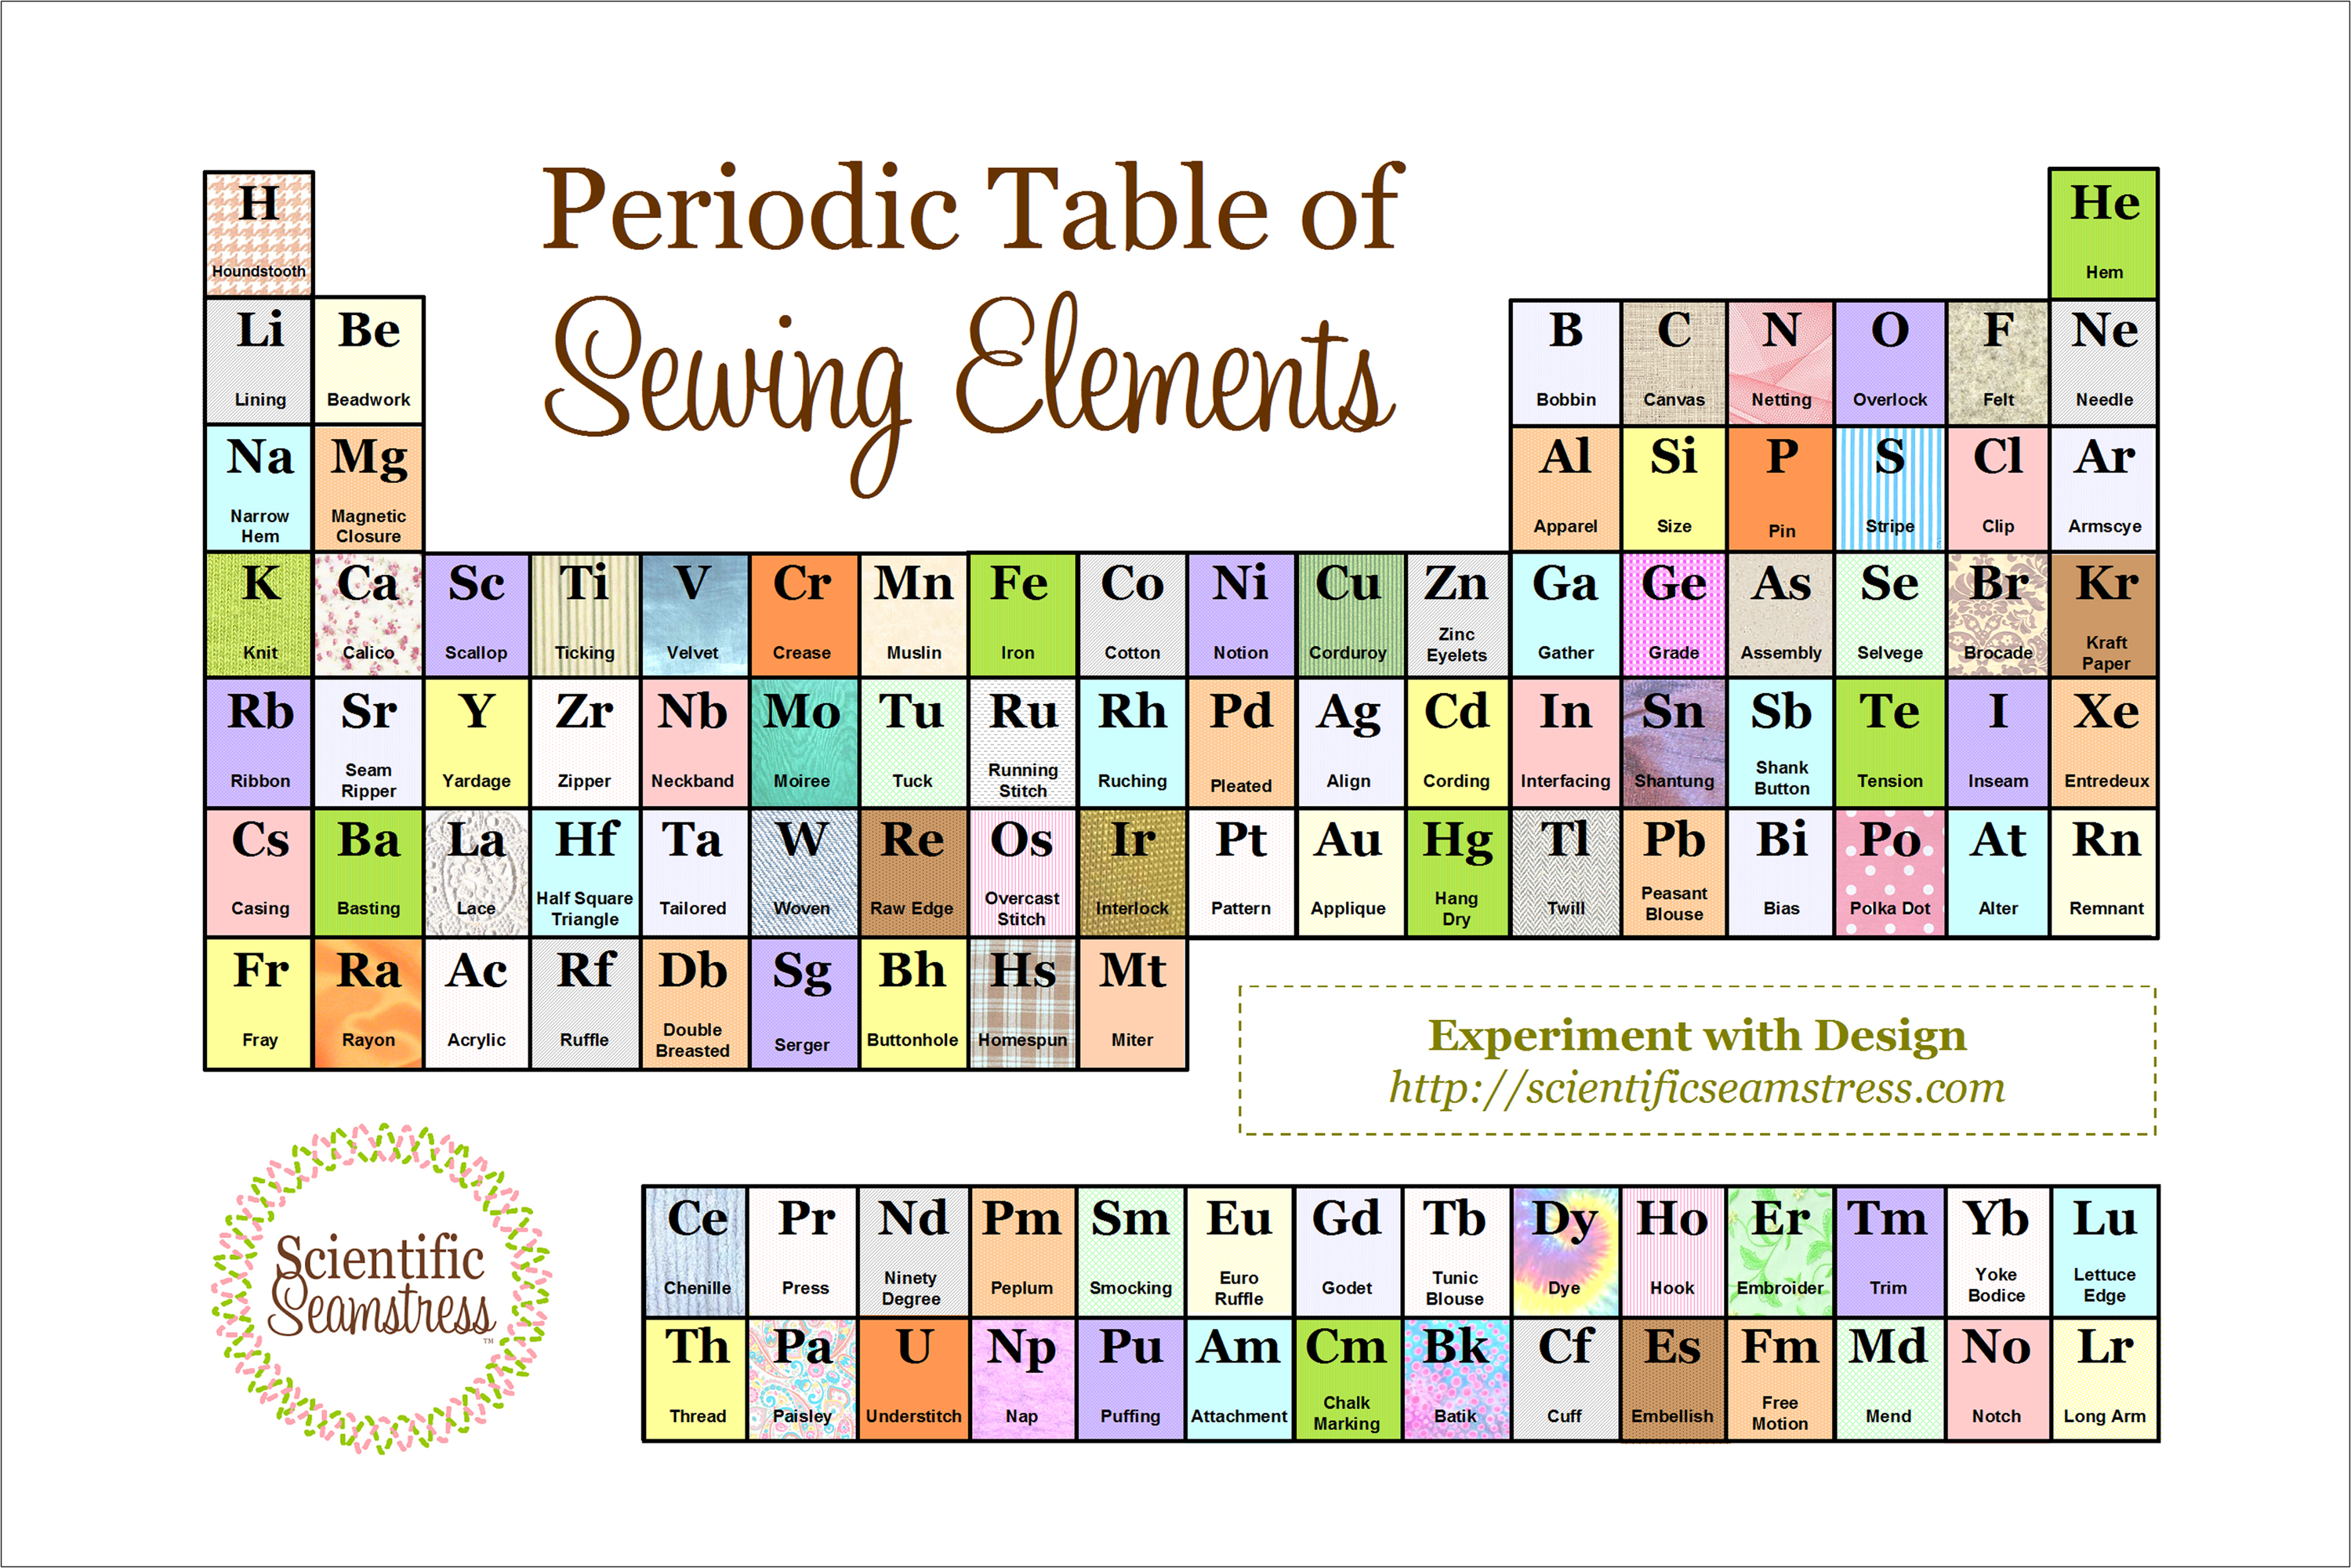 Cute periodic table images periodic table images free embroidery designs cute embroidery designs thought of this yesterday when suedewsberry showed her stitching of gamestrikefo Gallery